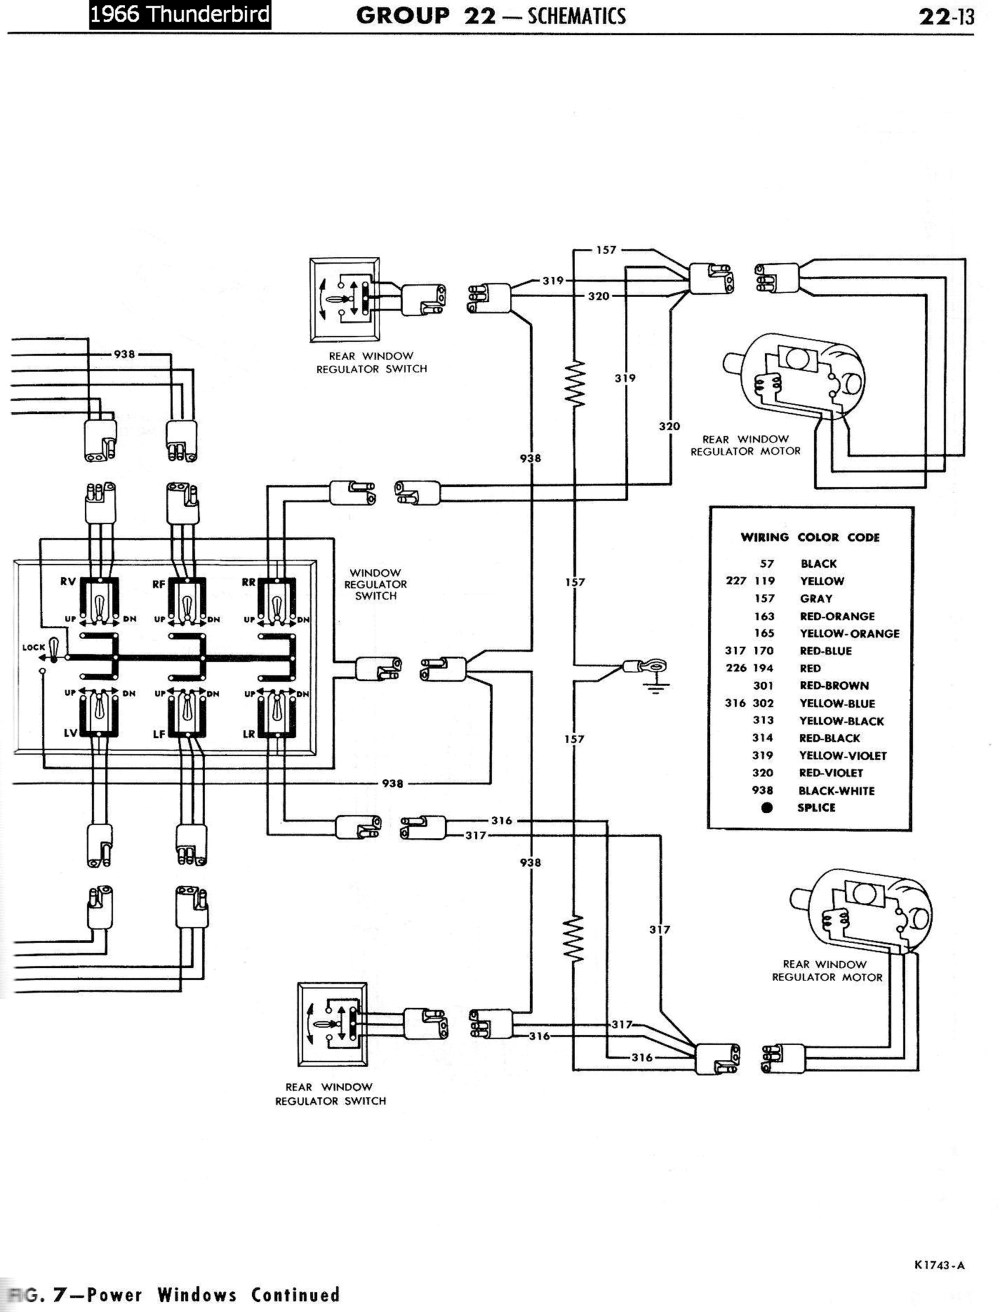 medium resolution of 1956 thunderbird wiring diagram 1957 wiring diagram rows 1956 thunderbird wiring diagram 1957